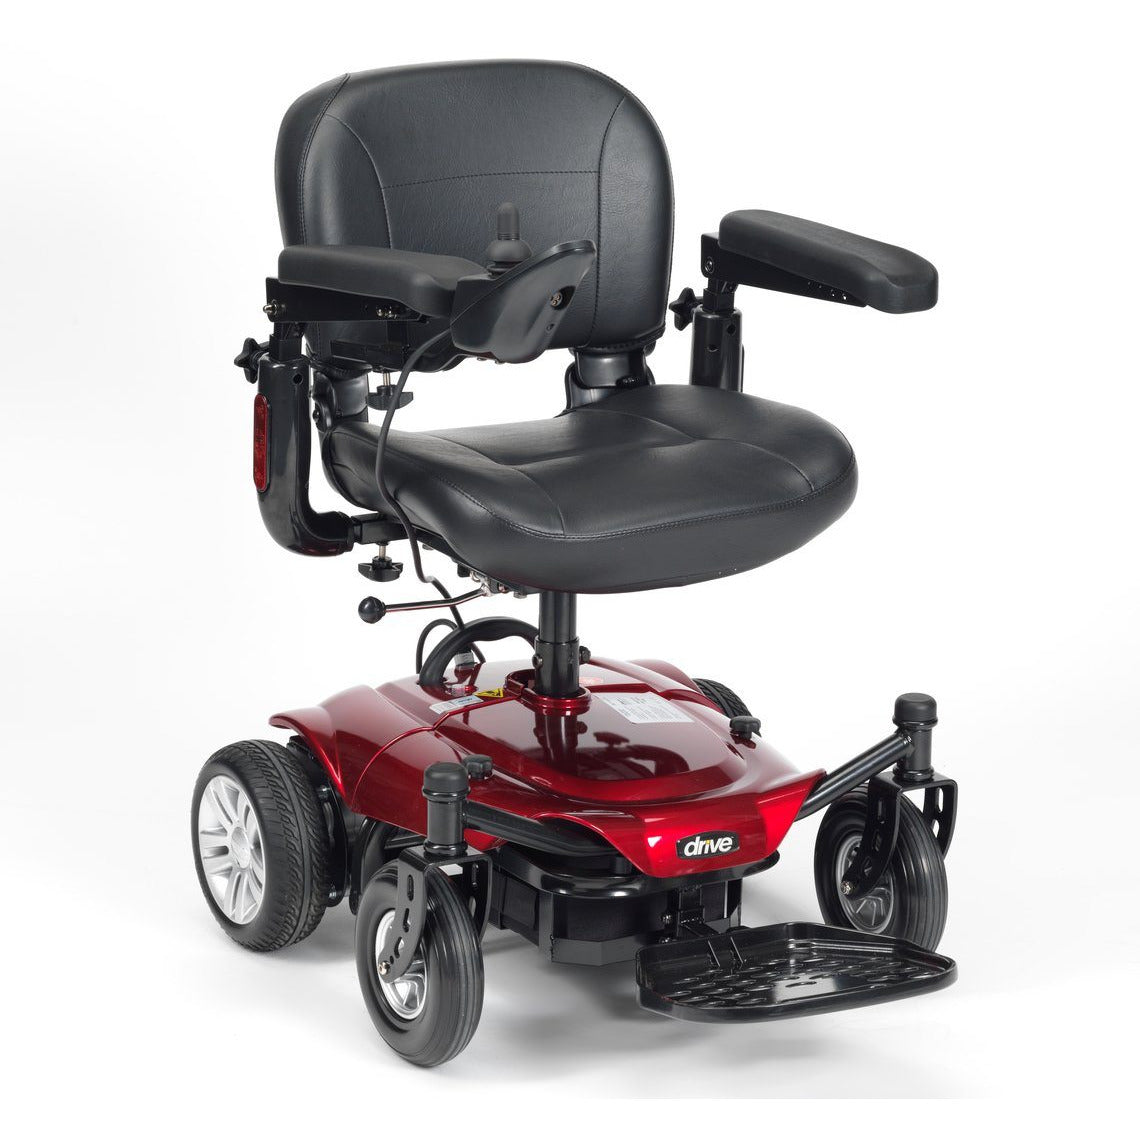 [Image: COBALTX16_Cobalt_Powerchair_in_Red__281_...1571714264]